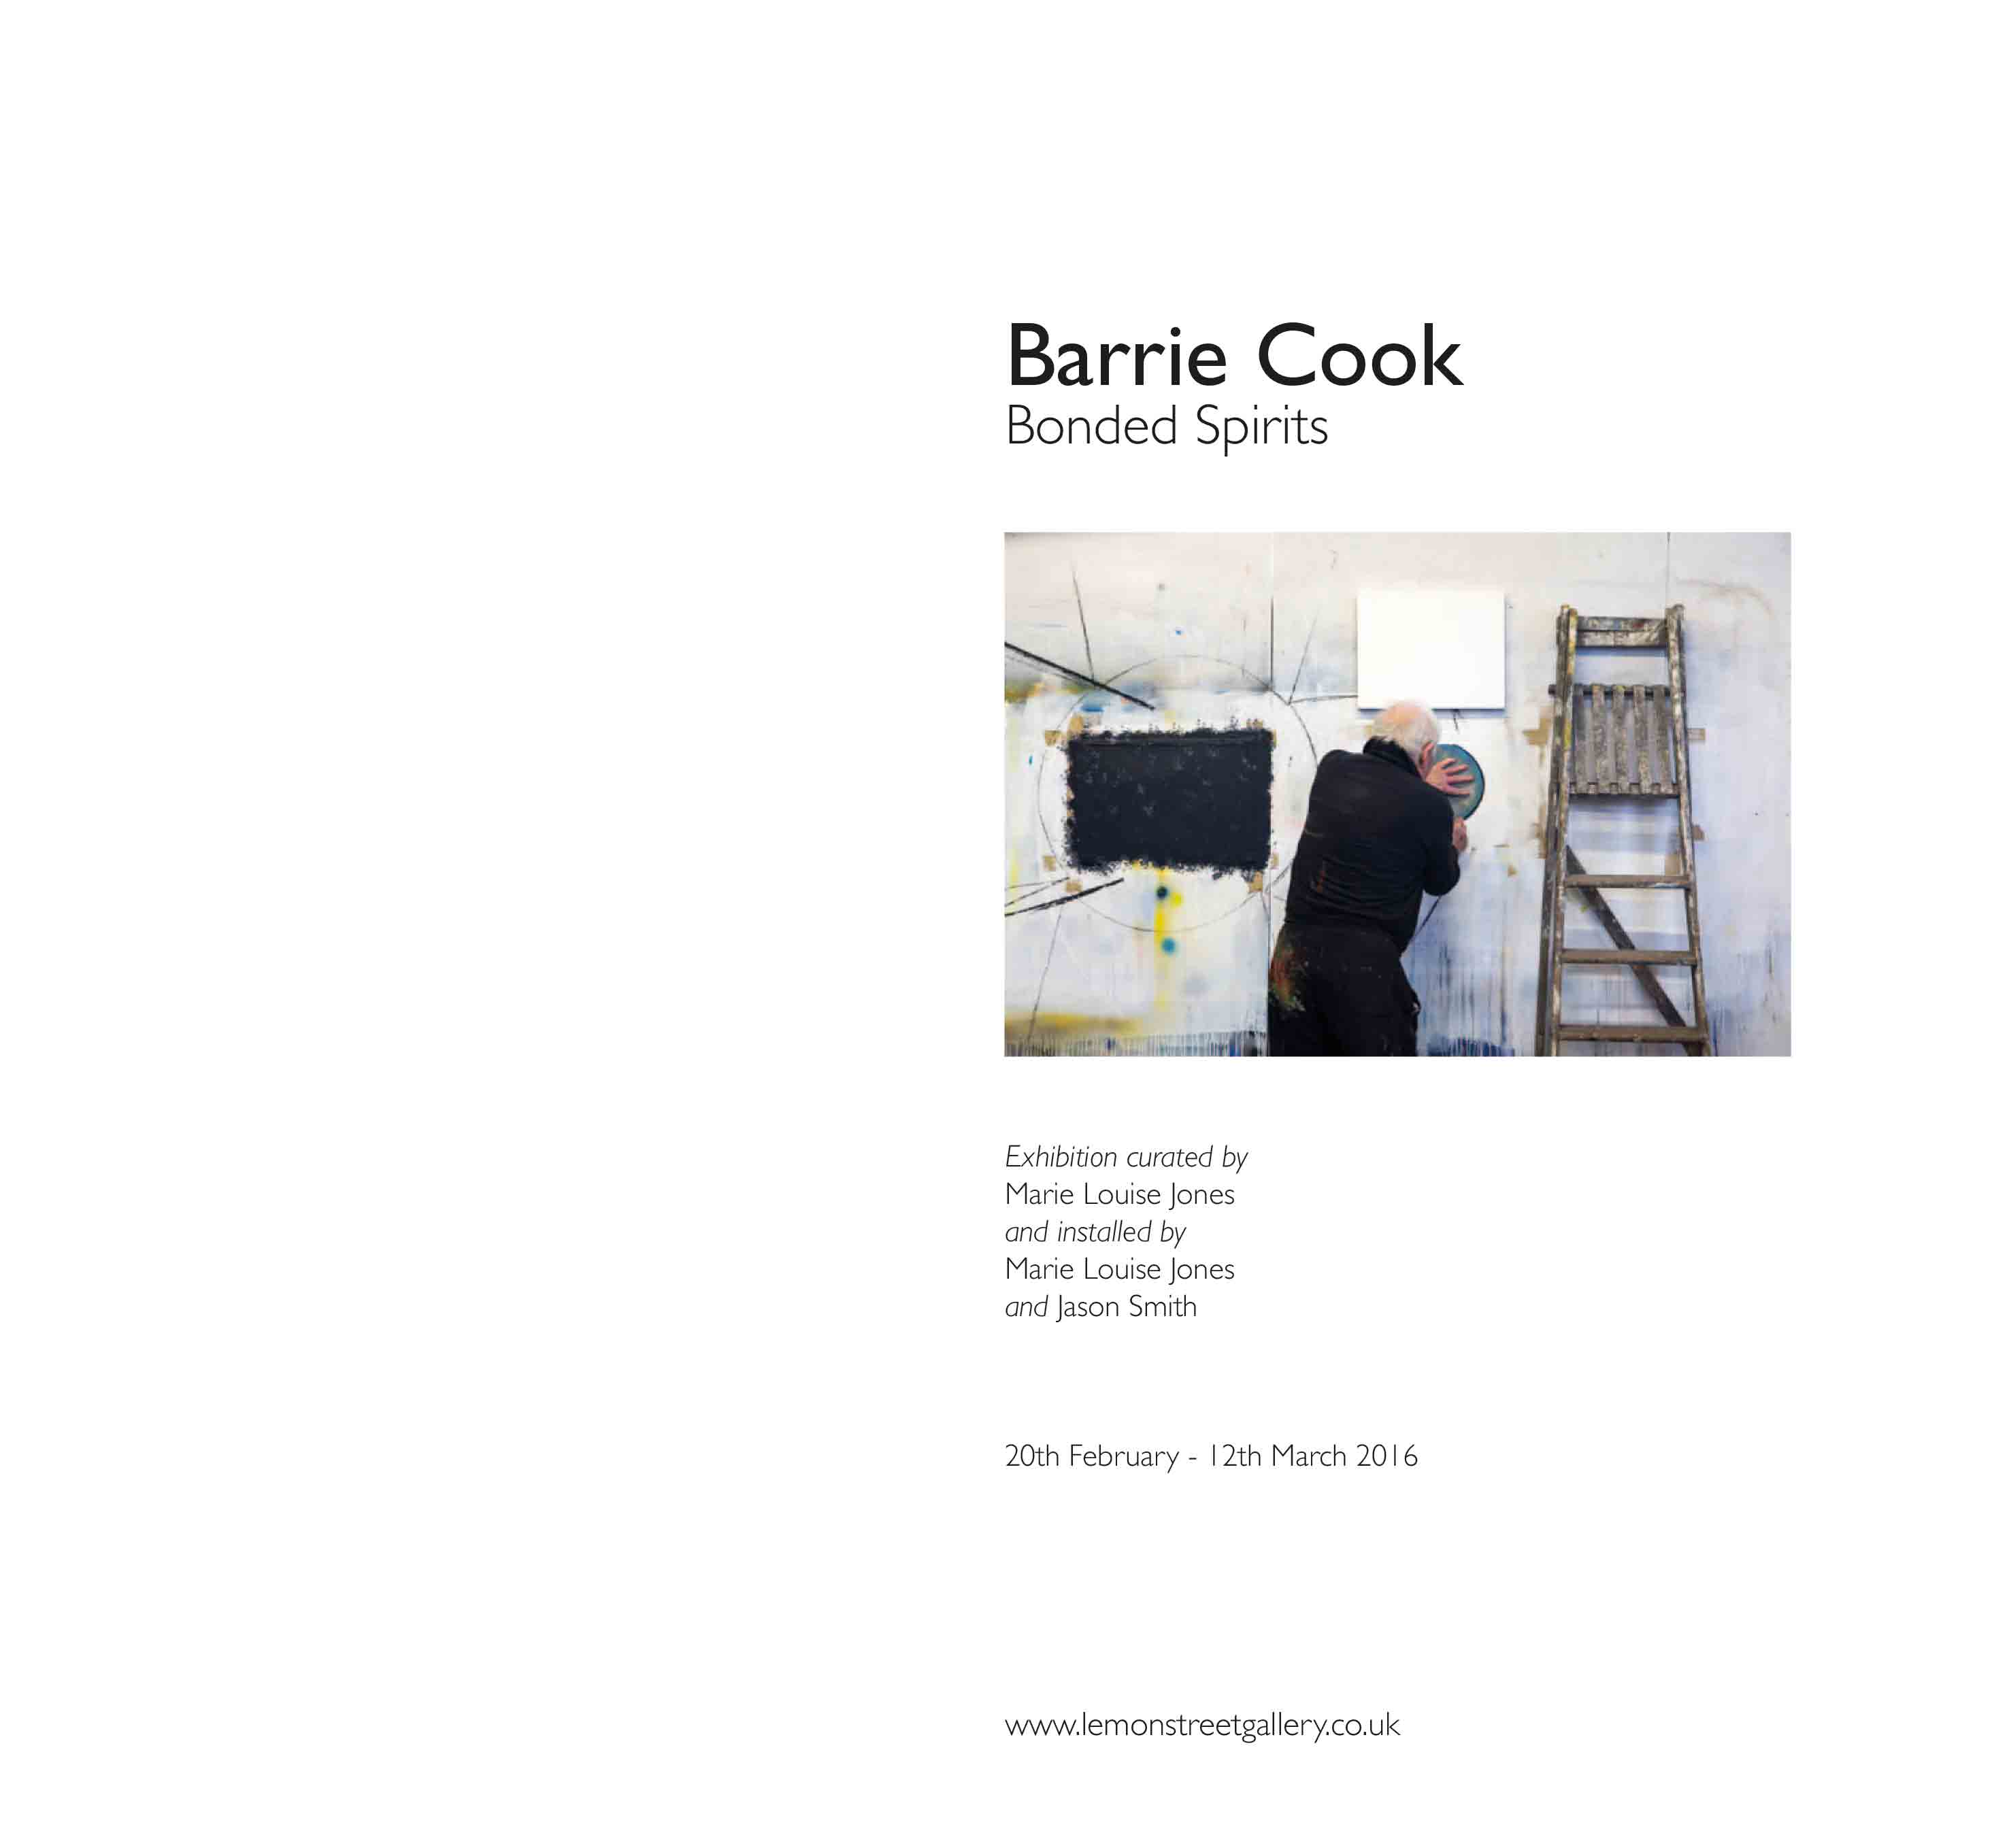 Barrie Cook publication